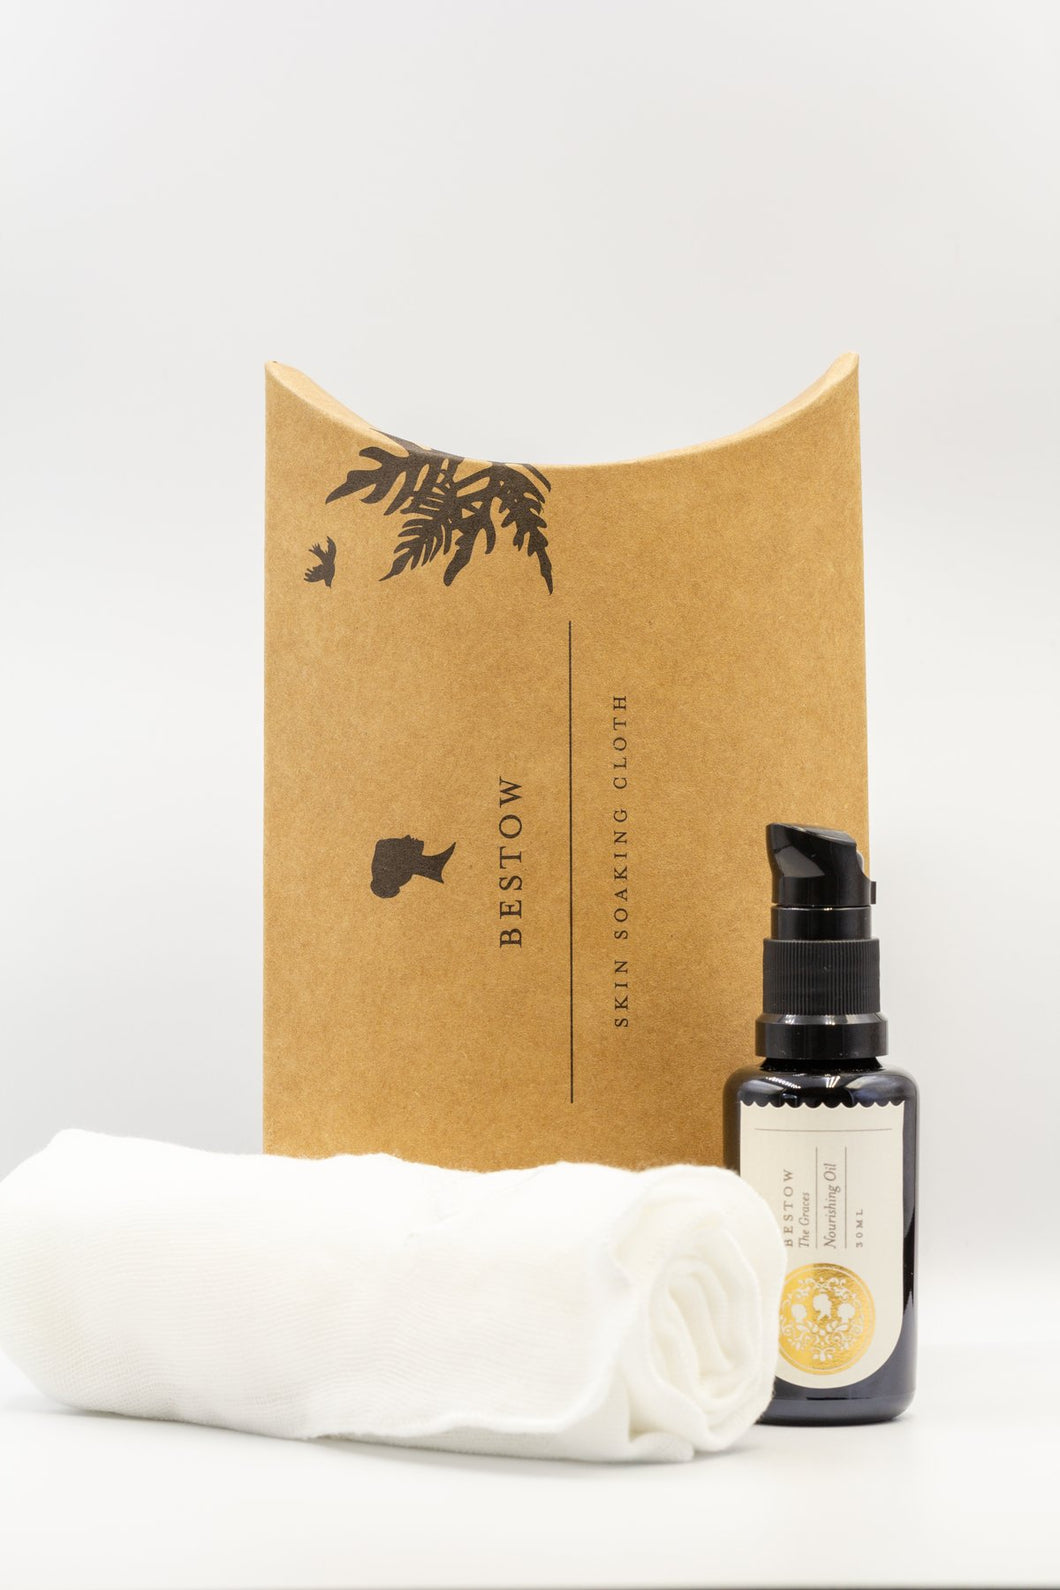 Bestow Nourishing Facial Oil + Soaking Cloth